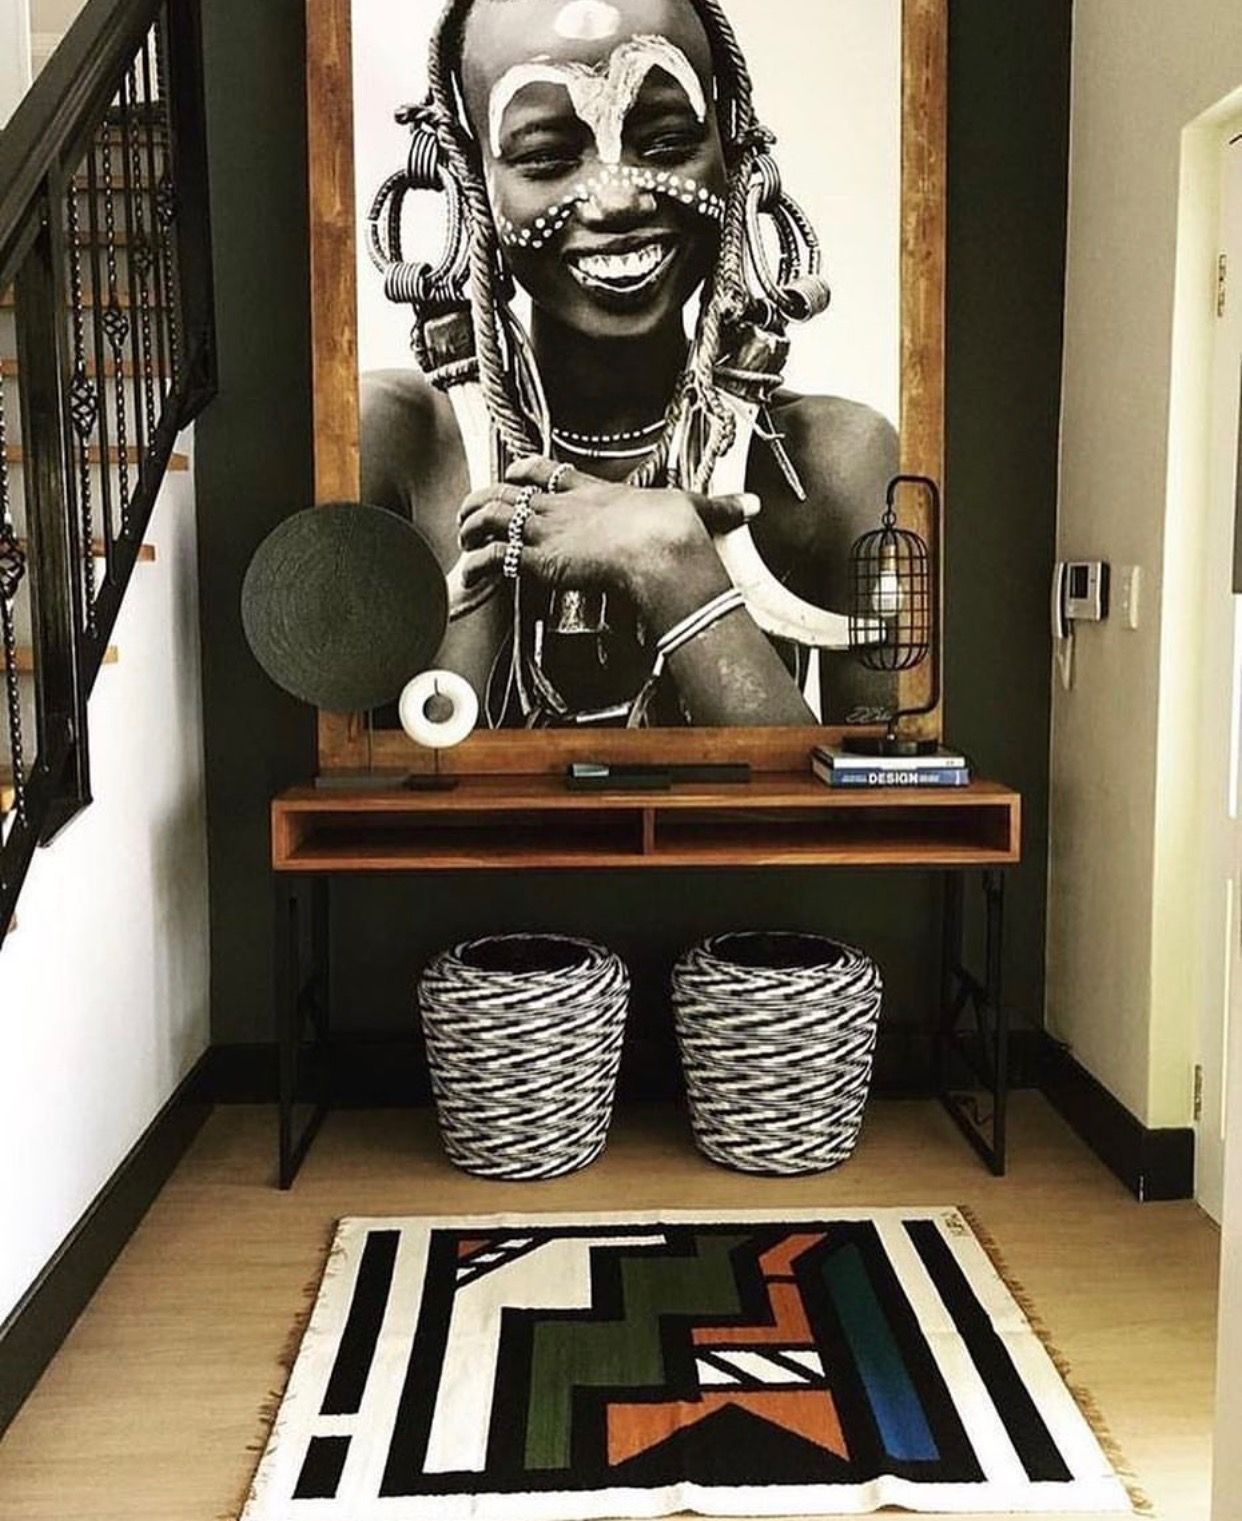 Pin by nic kirtley on home decor | African interior design ...